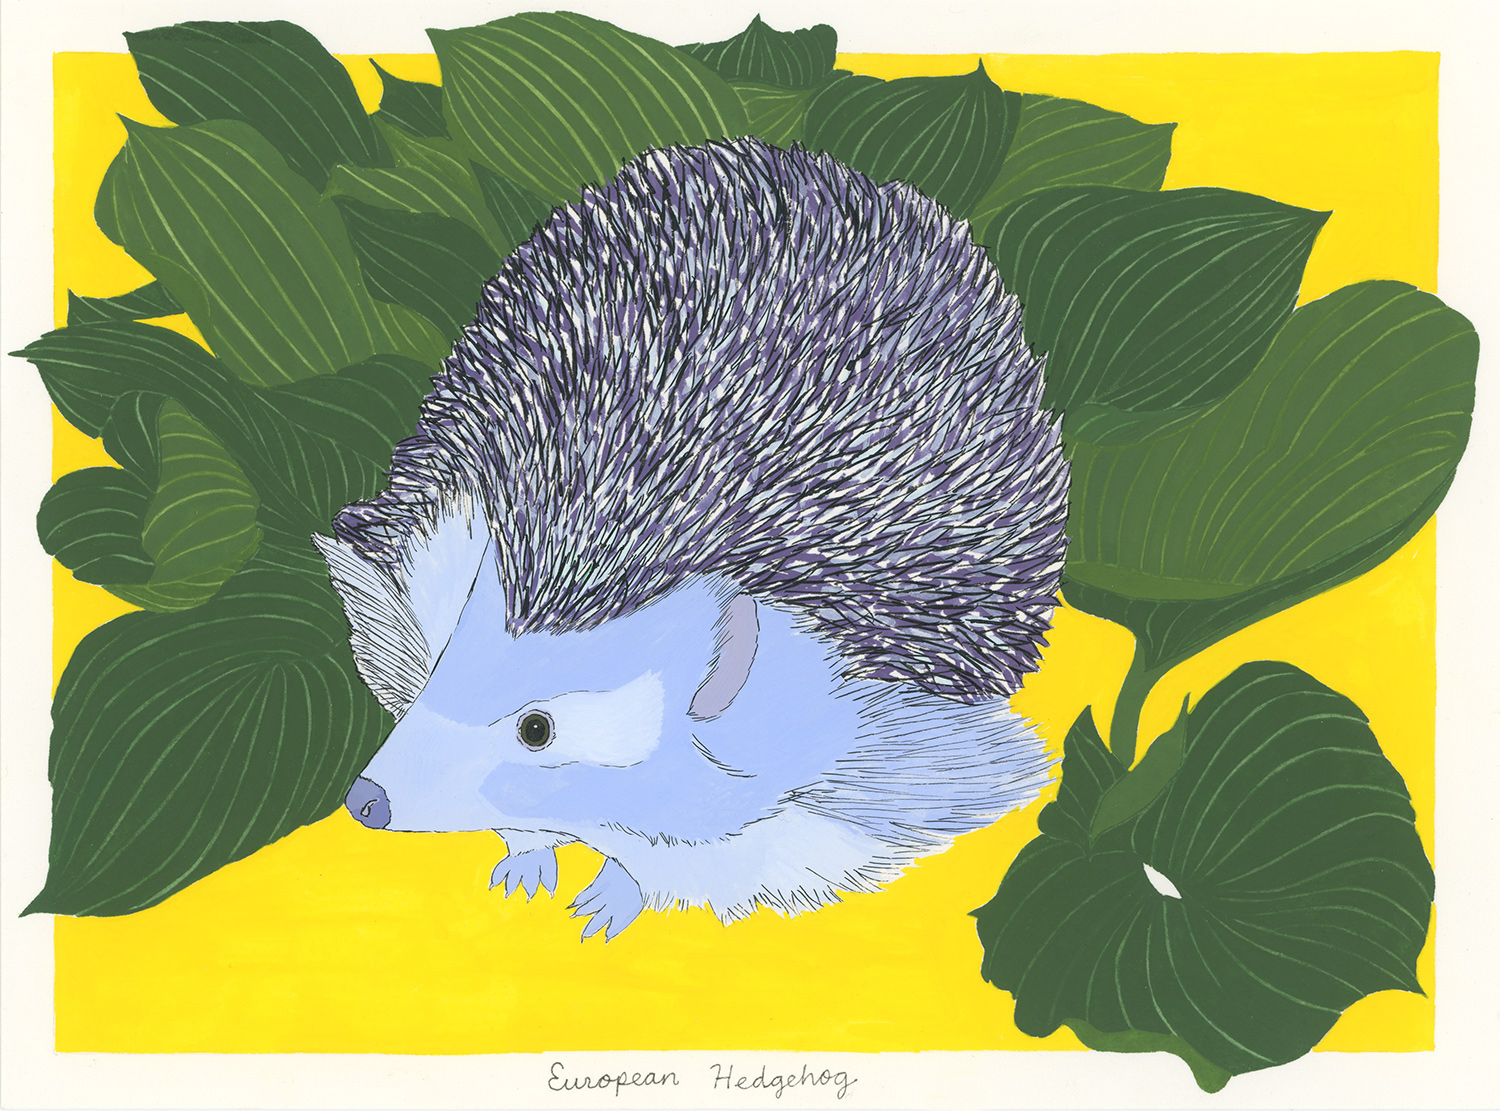 European Hedgehog (for the one that got stuck in a garden gate)